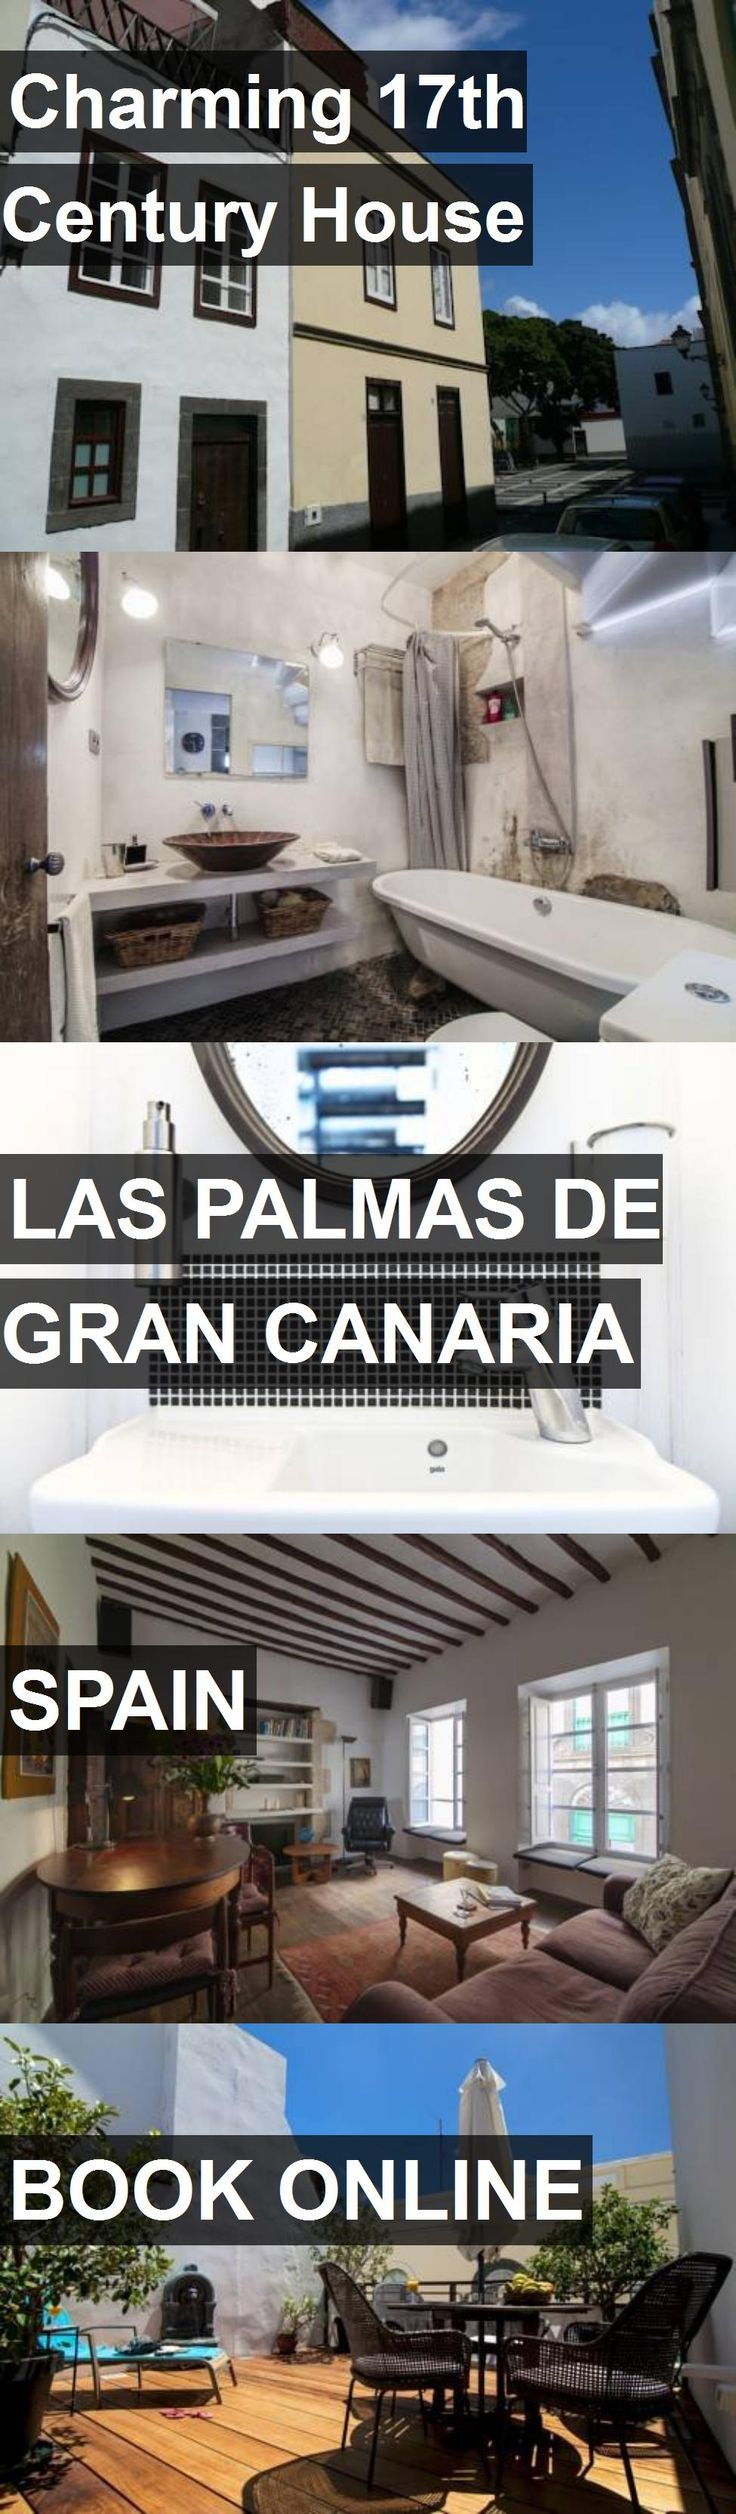 Hotel Charming 17th Century House in Las Palmas de Gran Canaria, Spain. For more information, photos, reviews and best prices please follow the link. #Spain #LasPalmasdeGranCanaria #travel #vacation #hotel